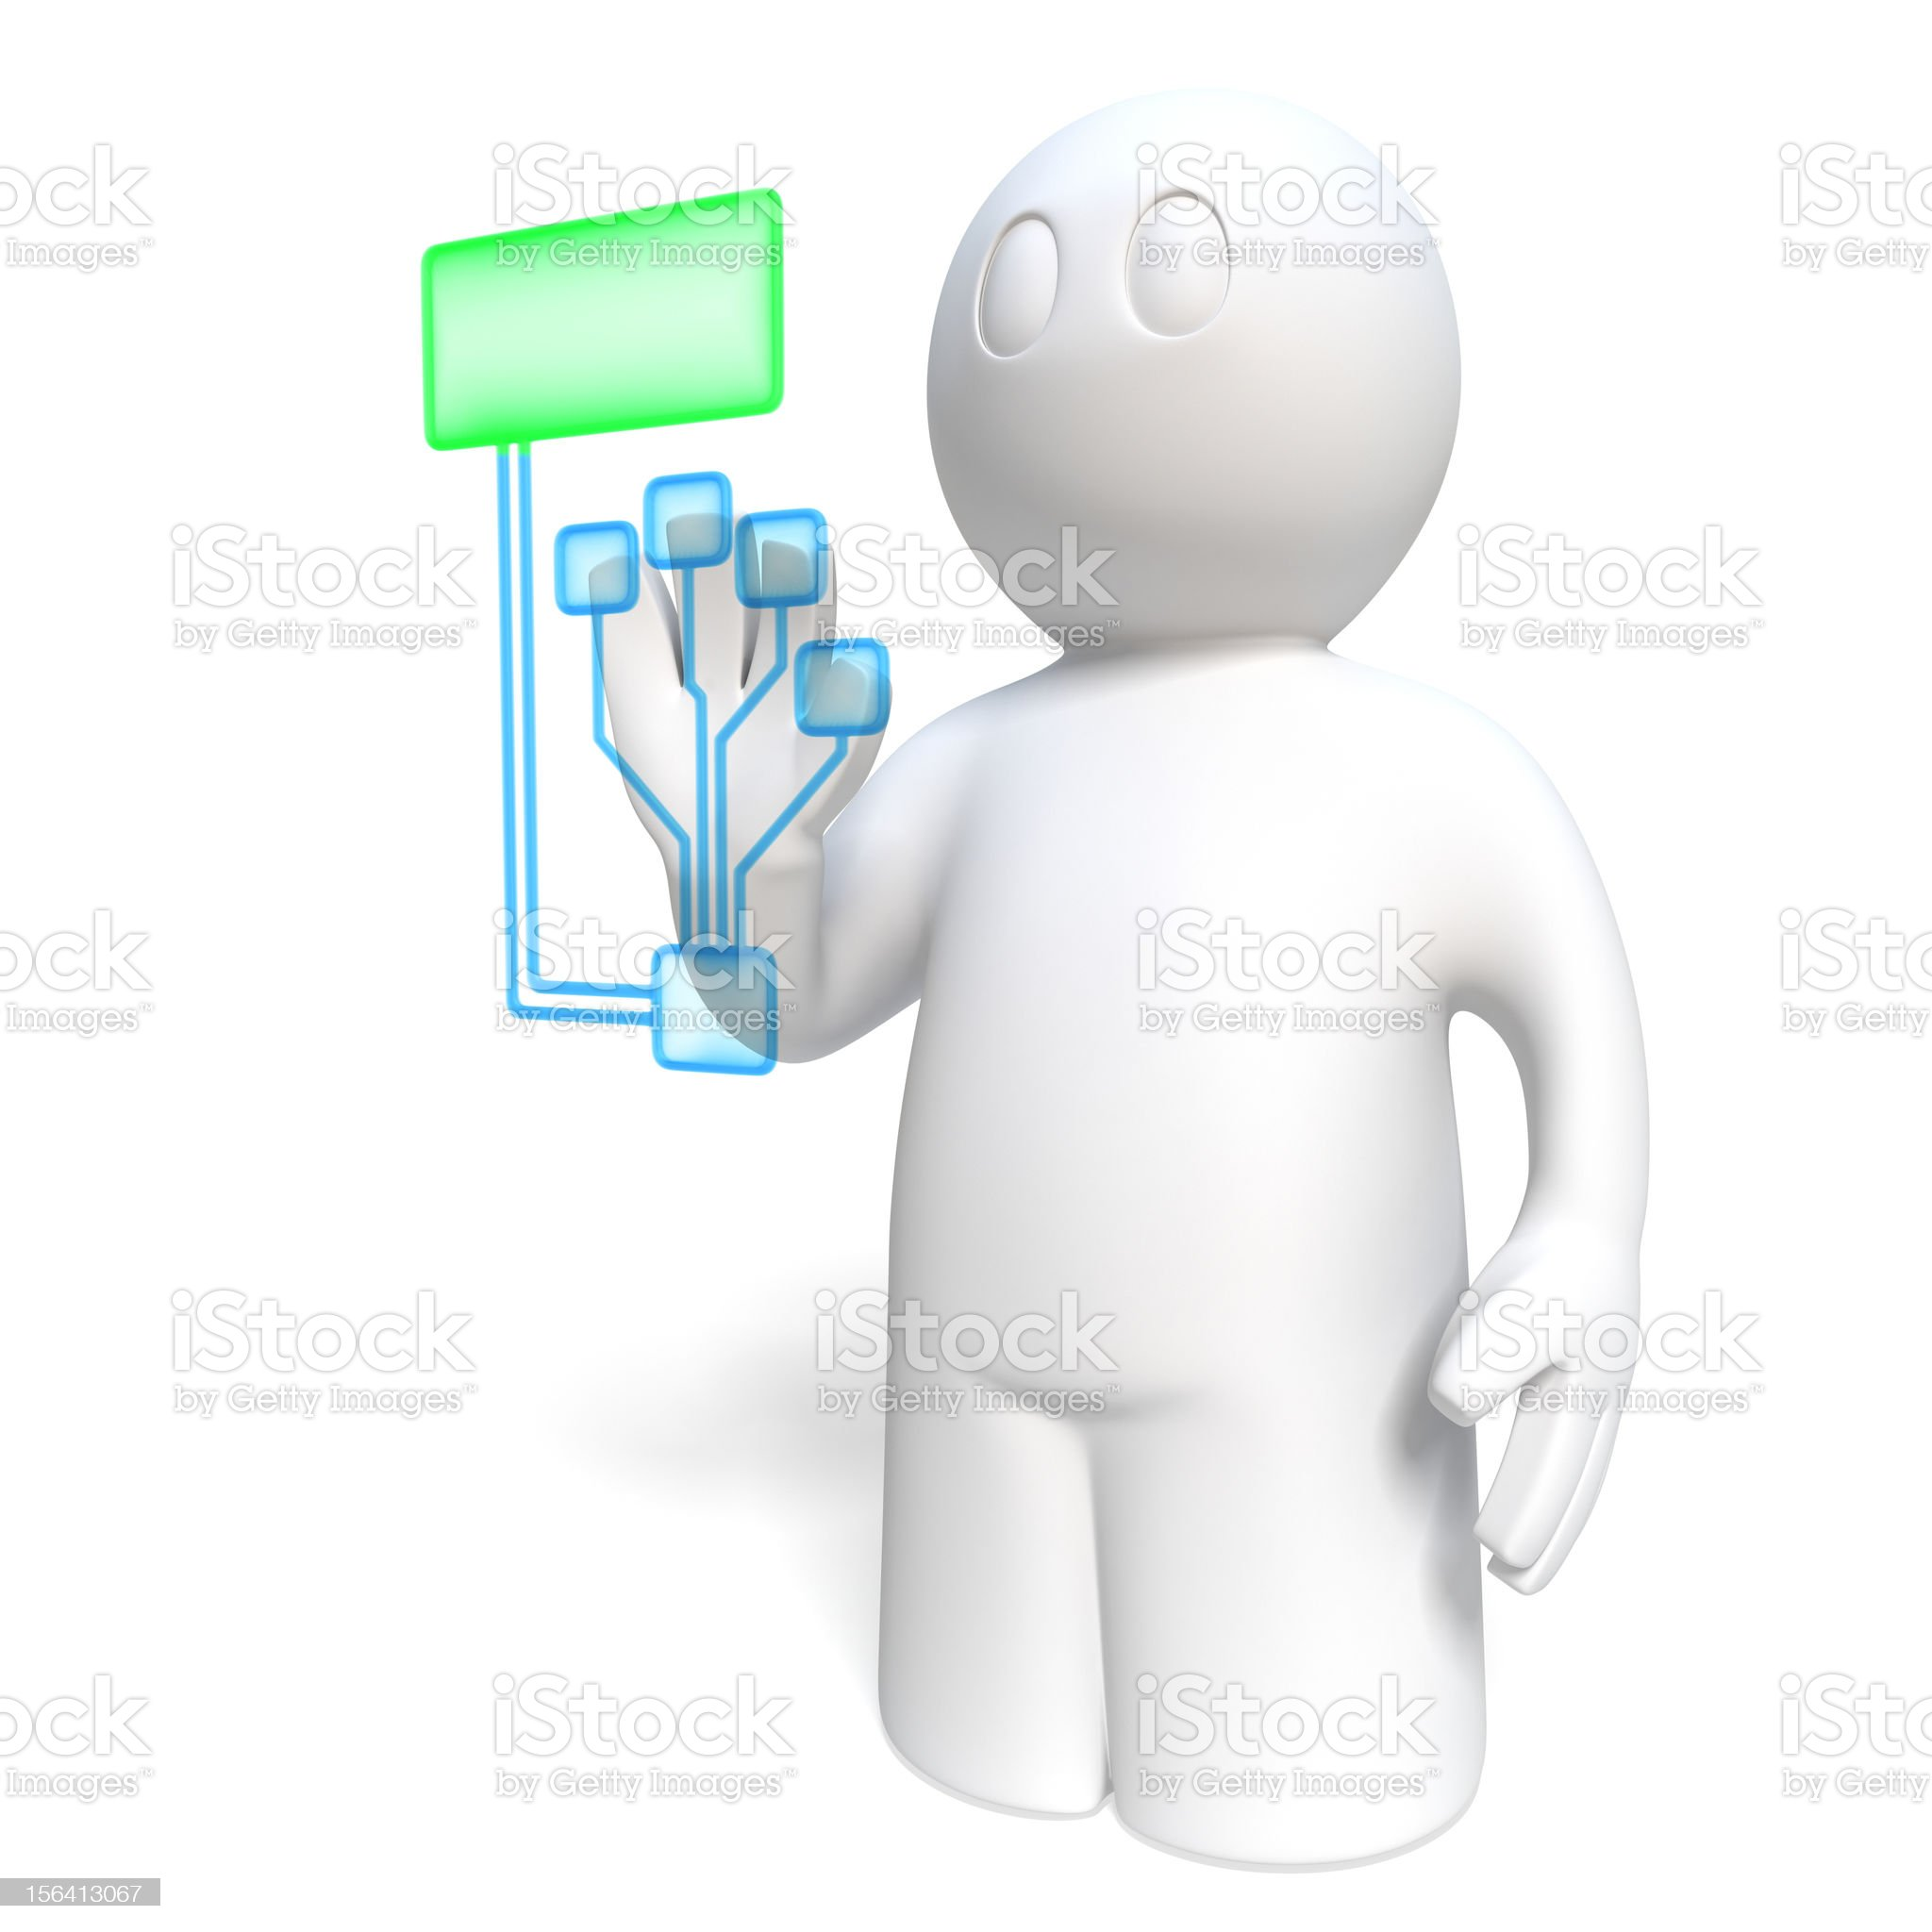 biometrical identification royalty-free stock photo